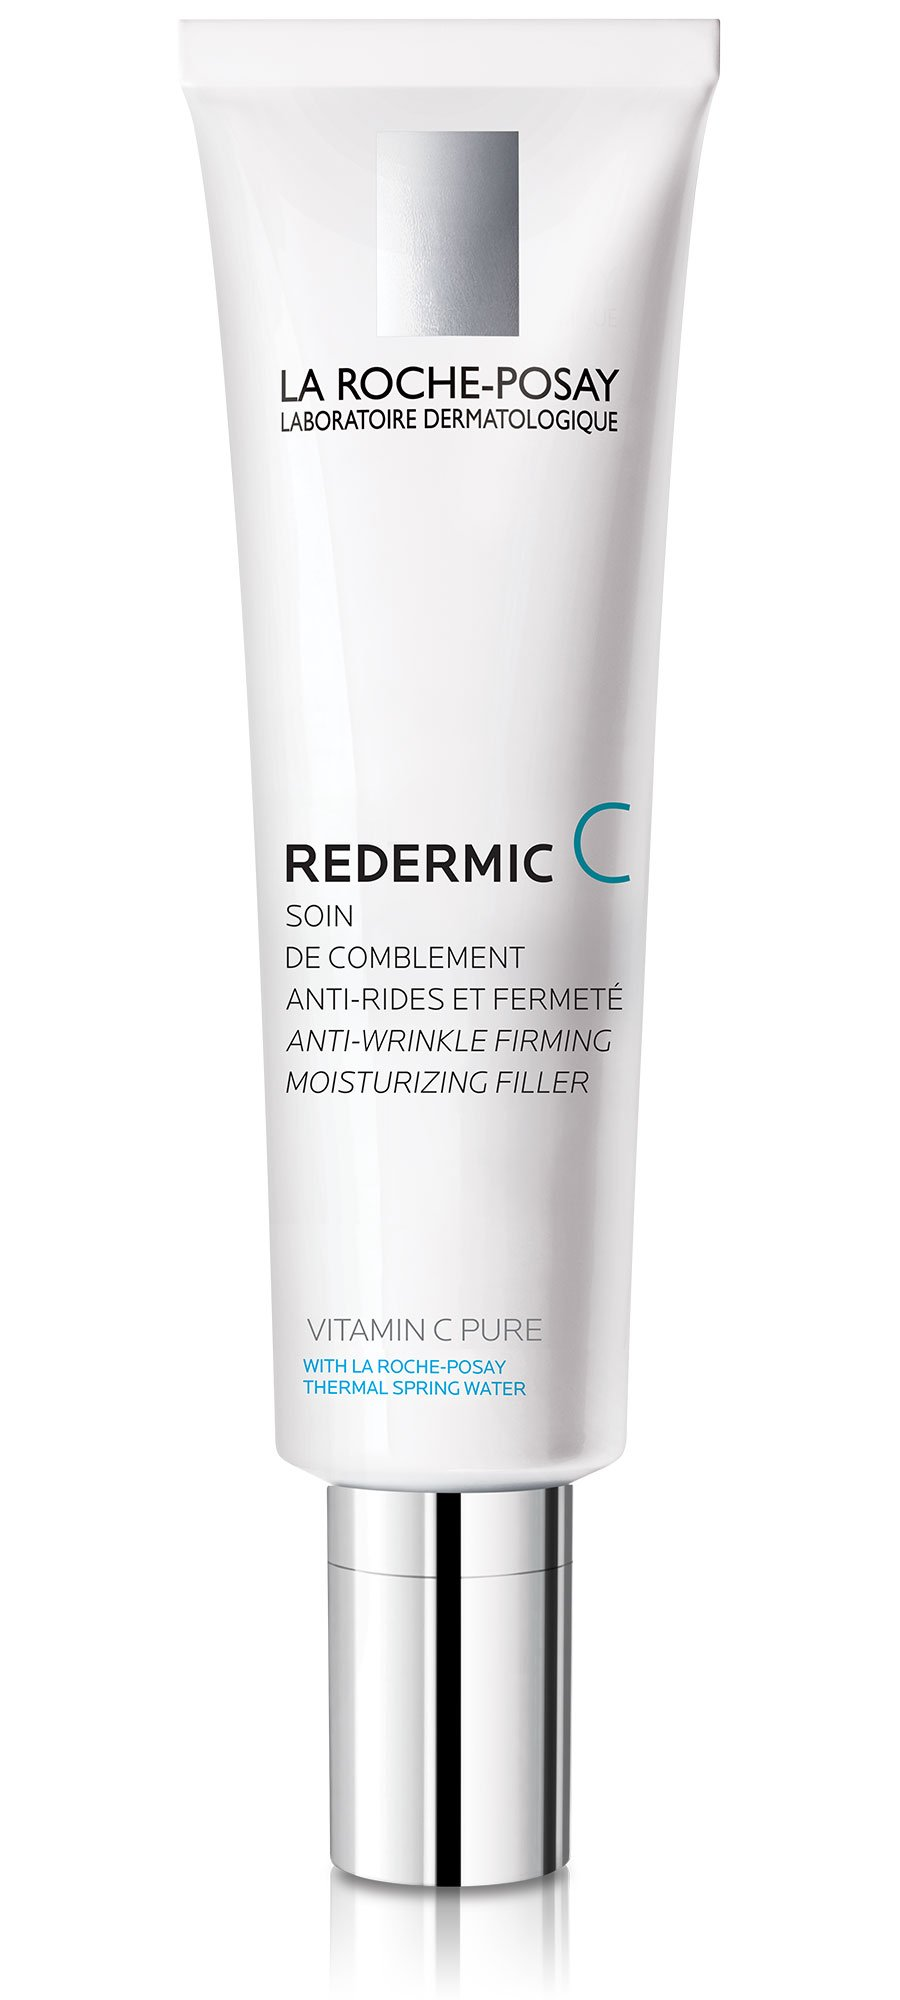 La Roche-Posay Redermic C Anti-Wrinkle Vitamin C Moisturizer with Pure Vitamin C & Hyaluronic Acid for Dry Skin, 0.5 Fl. Oz.